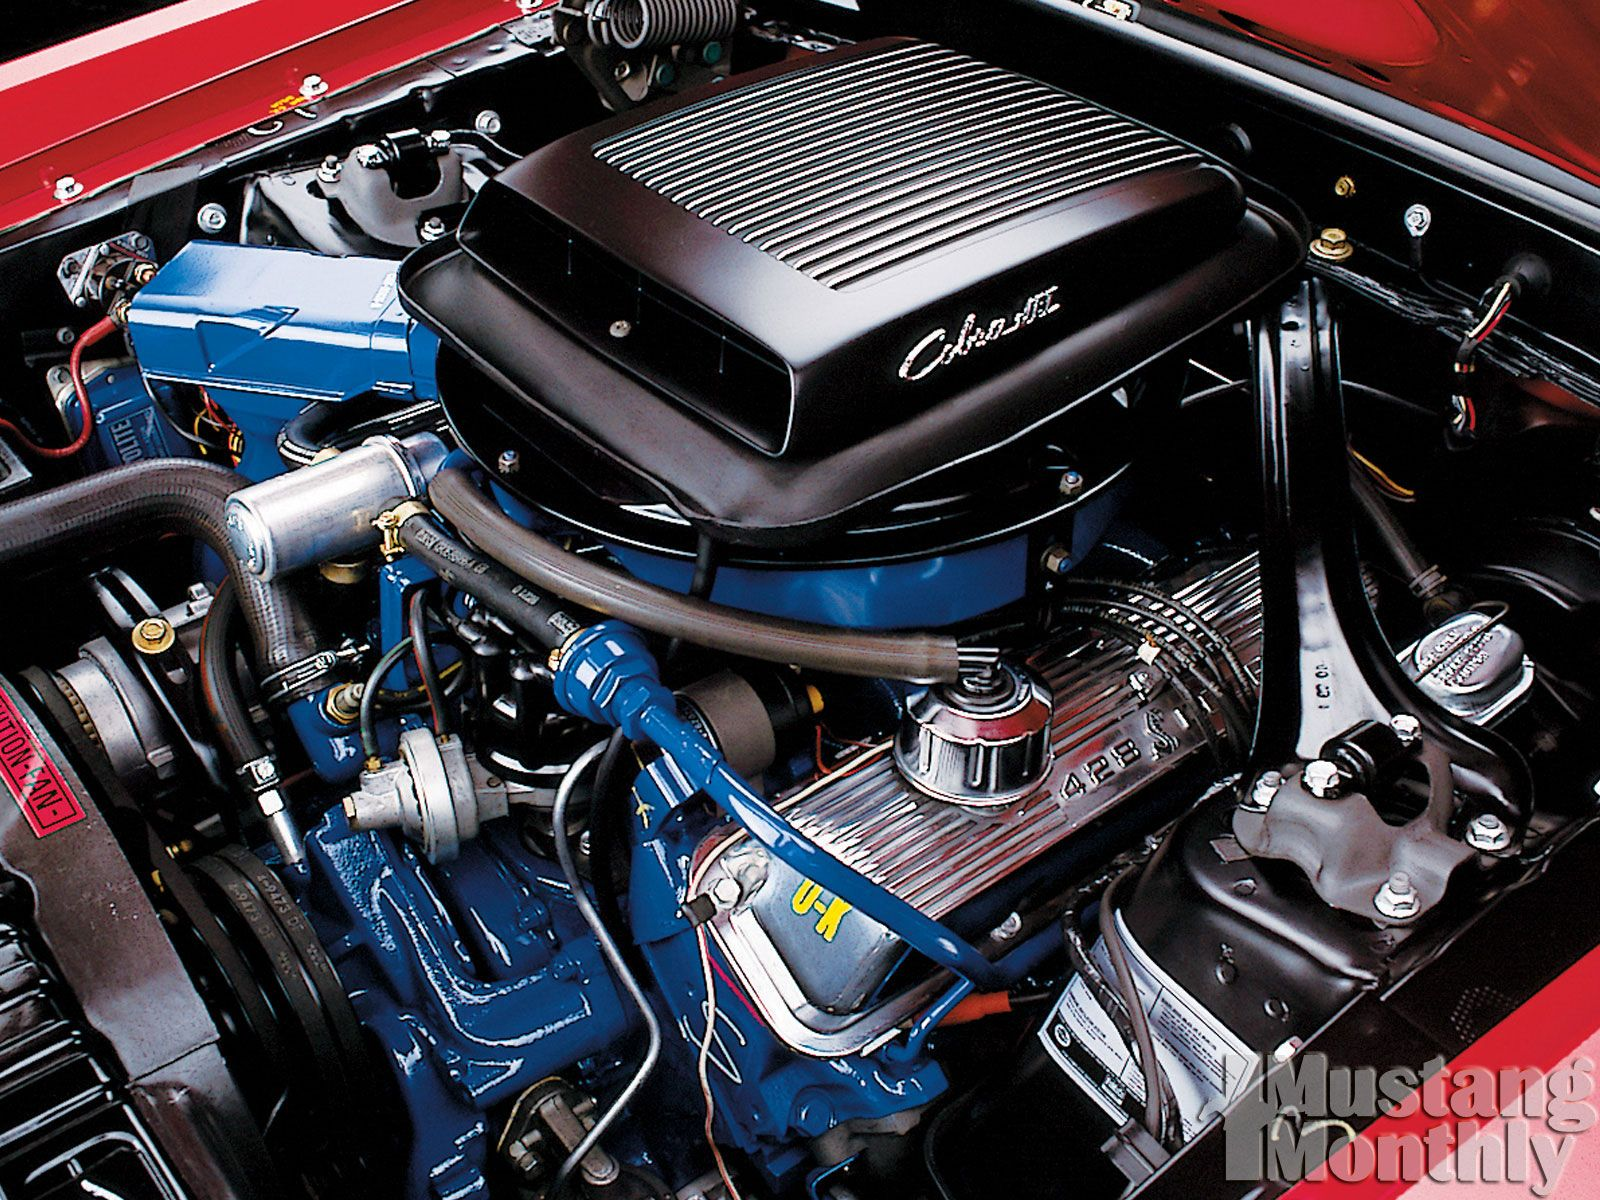 428 cobra jet engine and 427 ford engine  | Mustangs